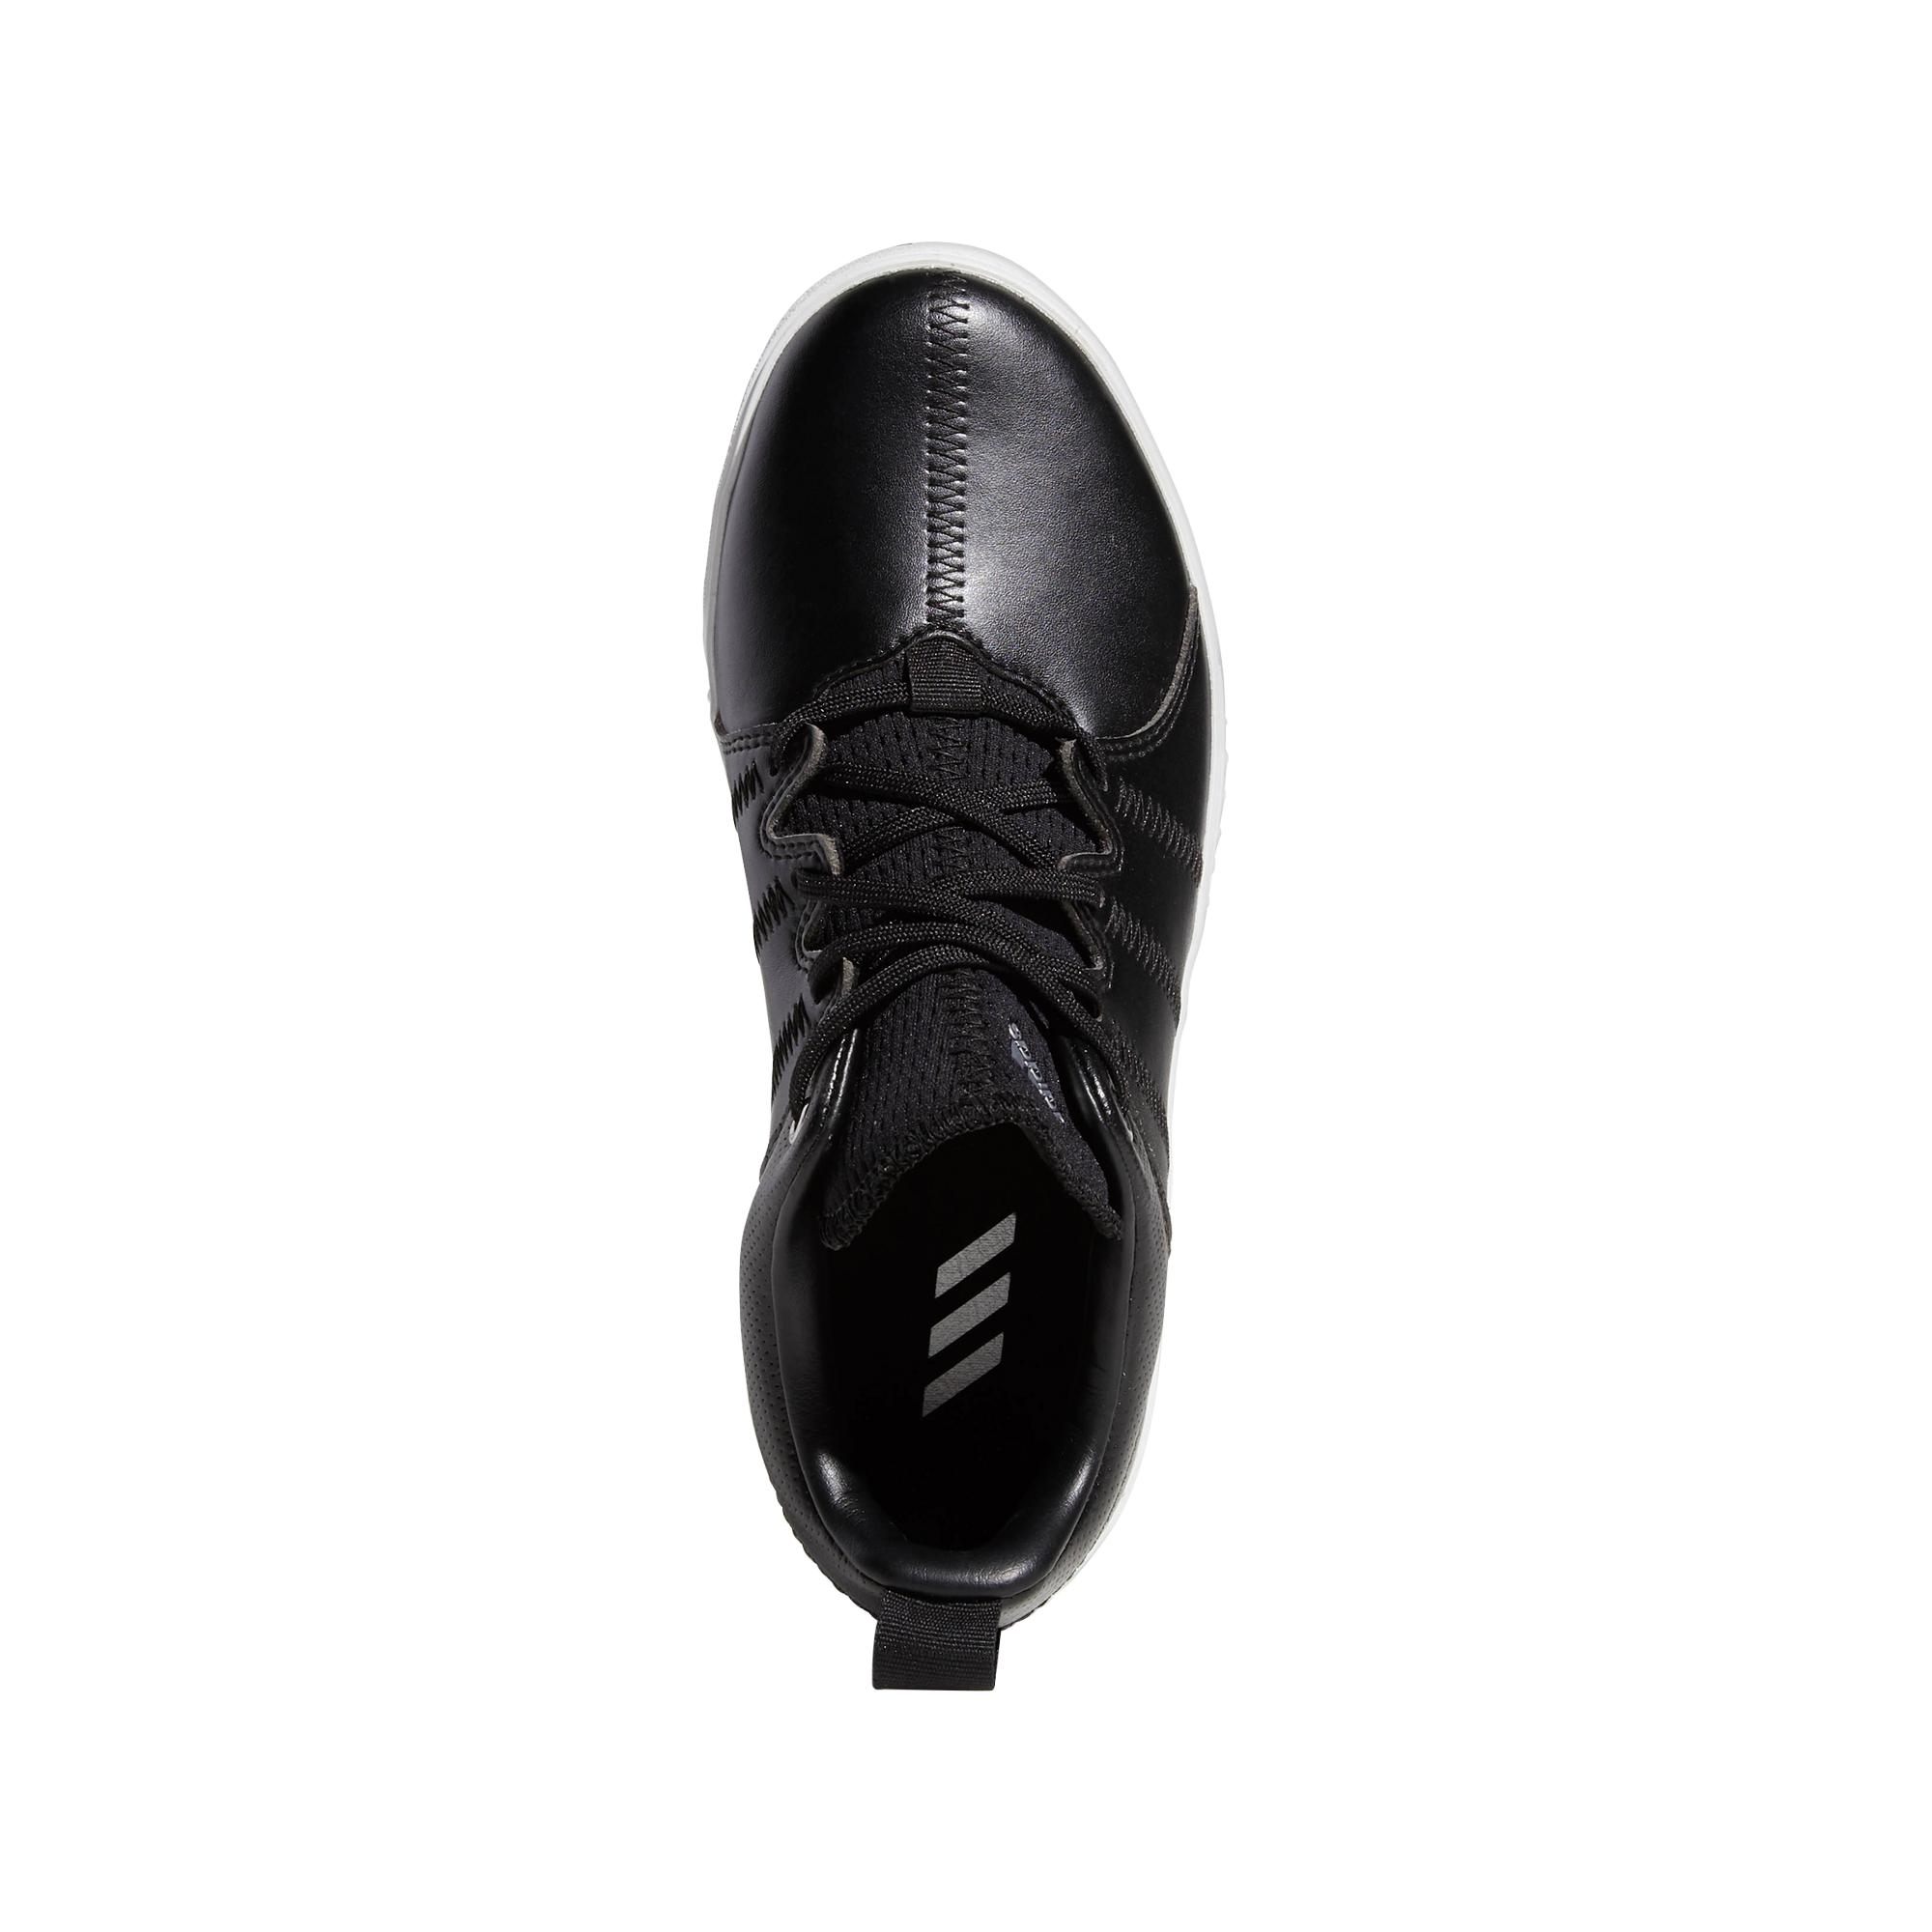 Junior Adicross PPF Spikeless Golf Shoe - Black